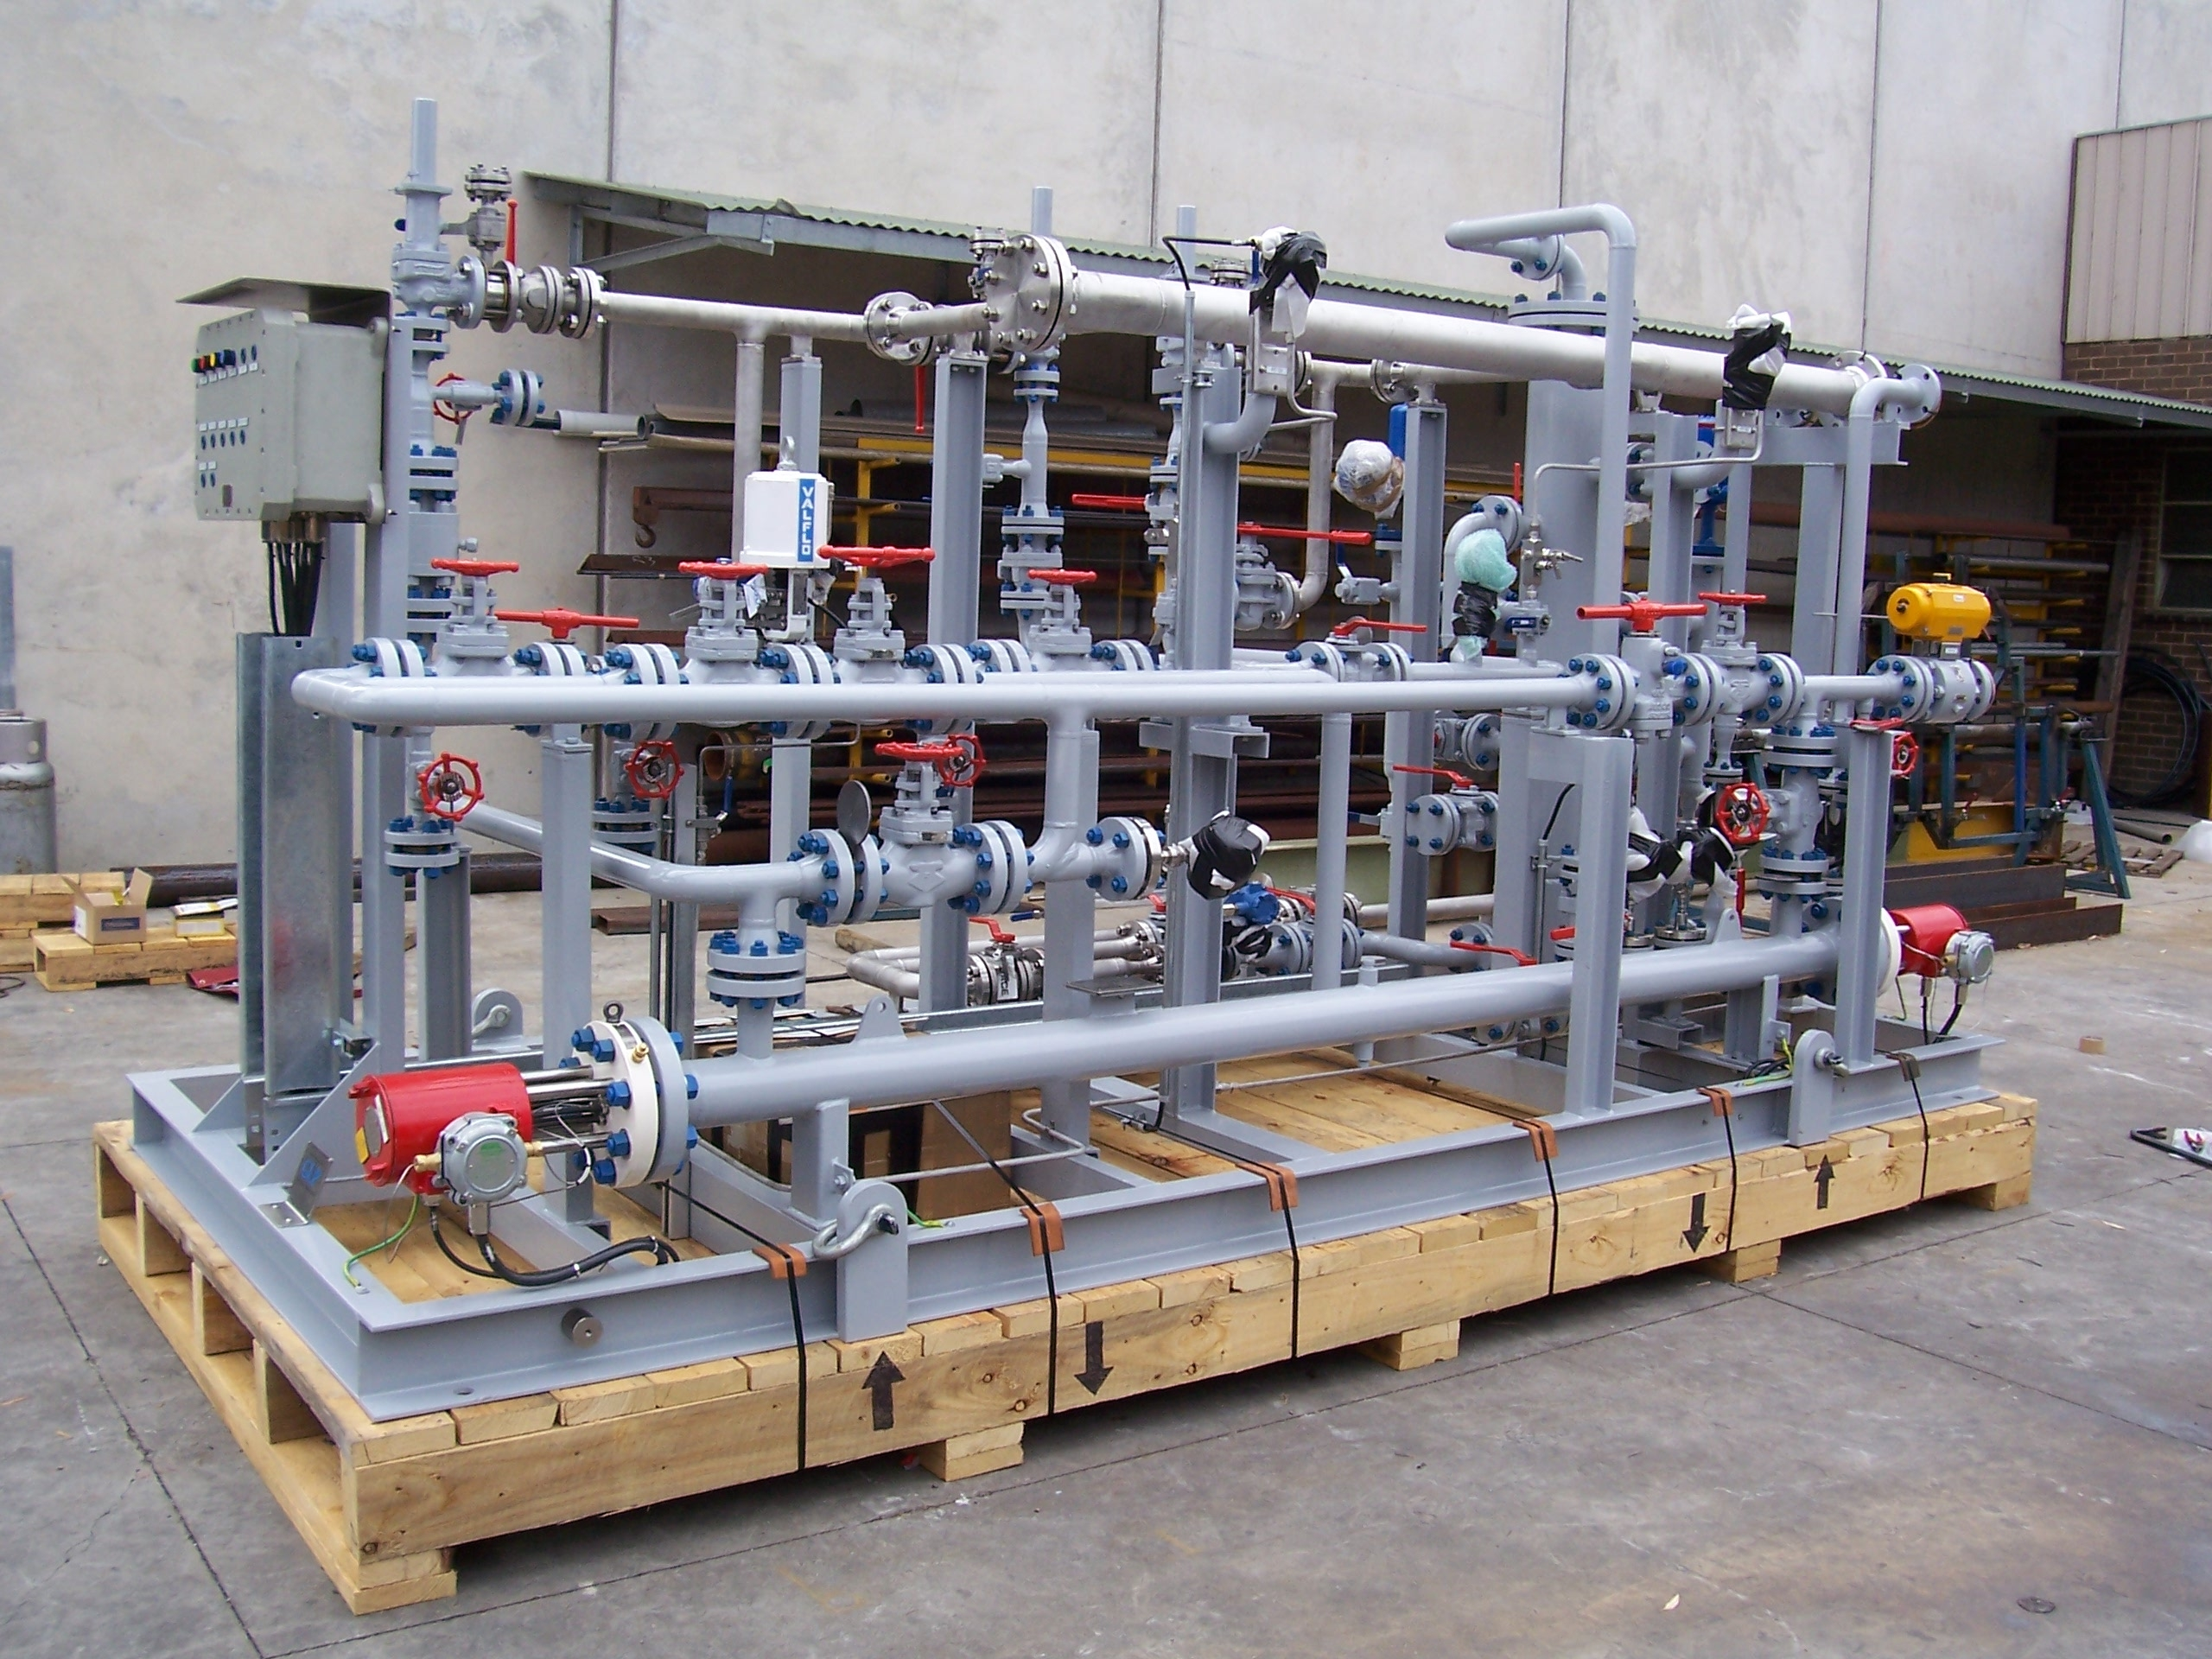 NACAP – GRF Fuel Gas Skid for the Chana Gas Receiving Terminal